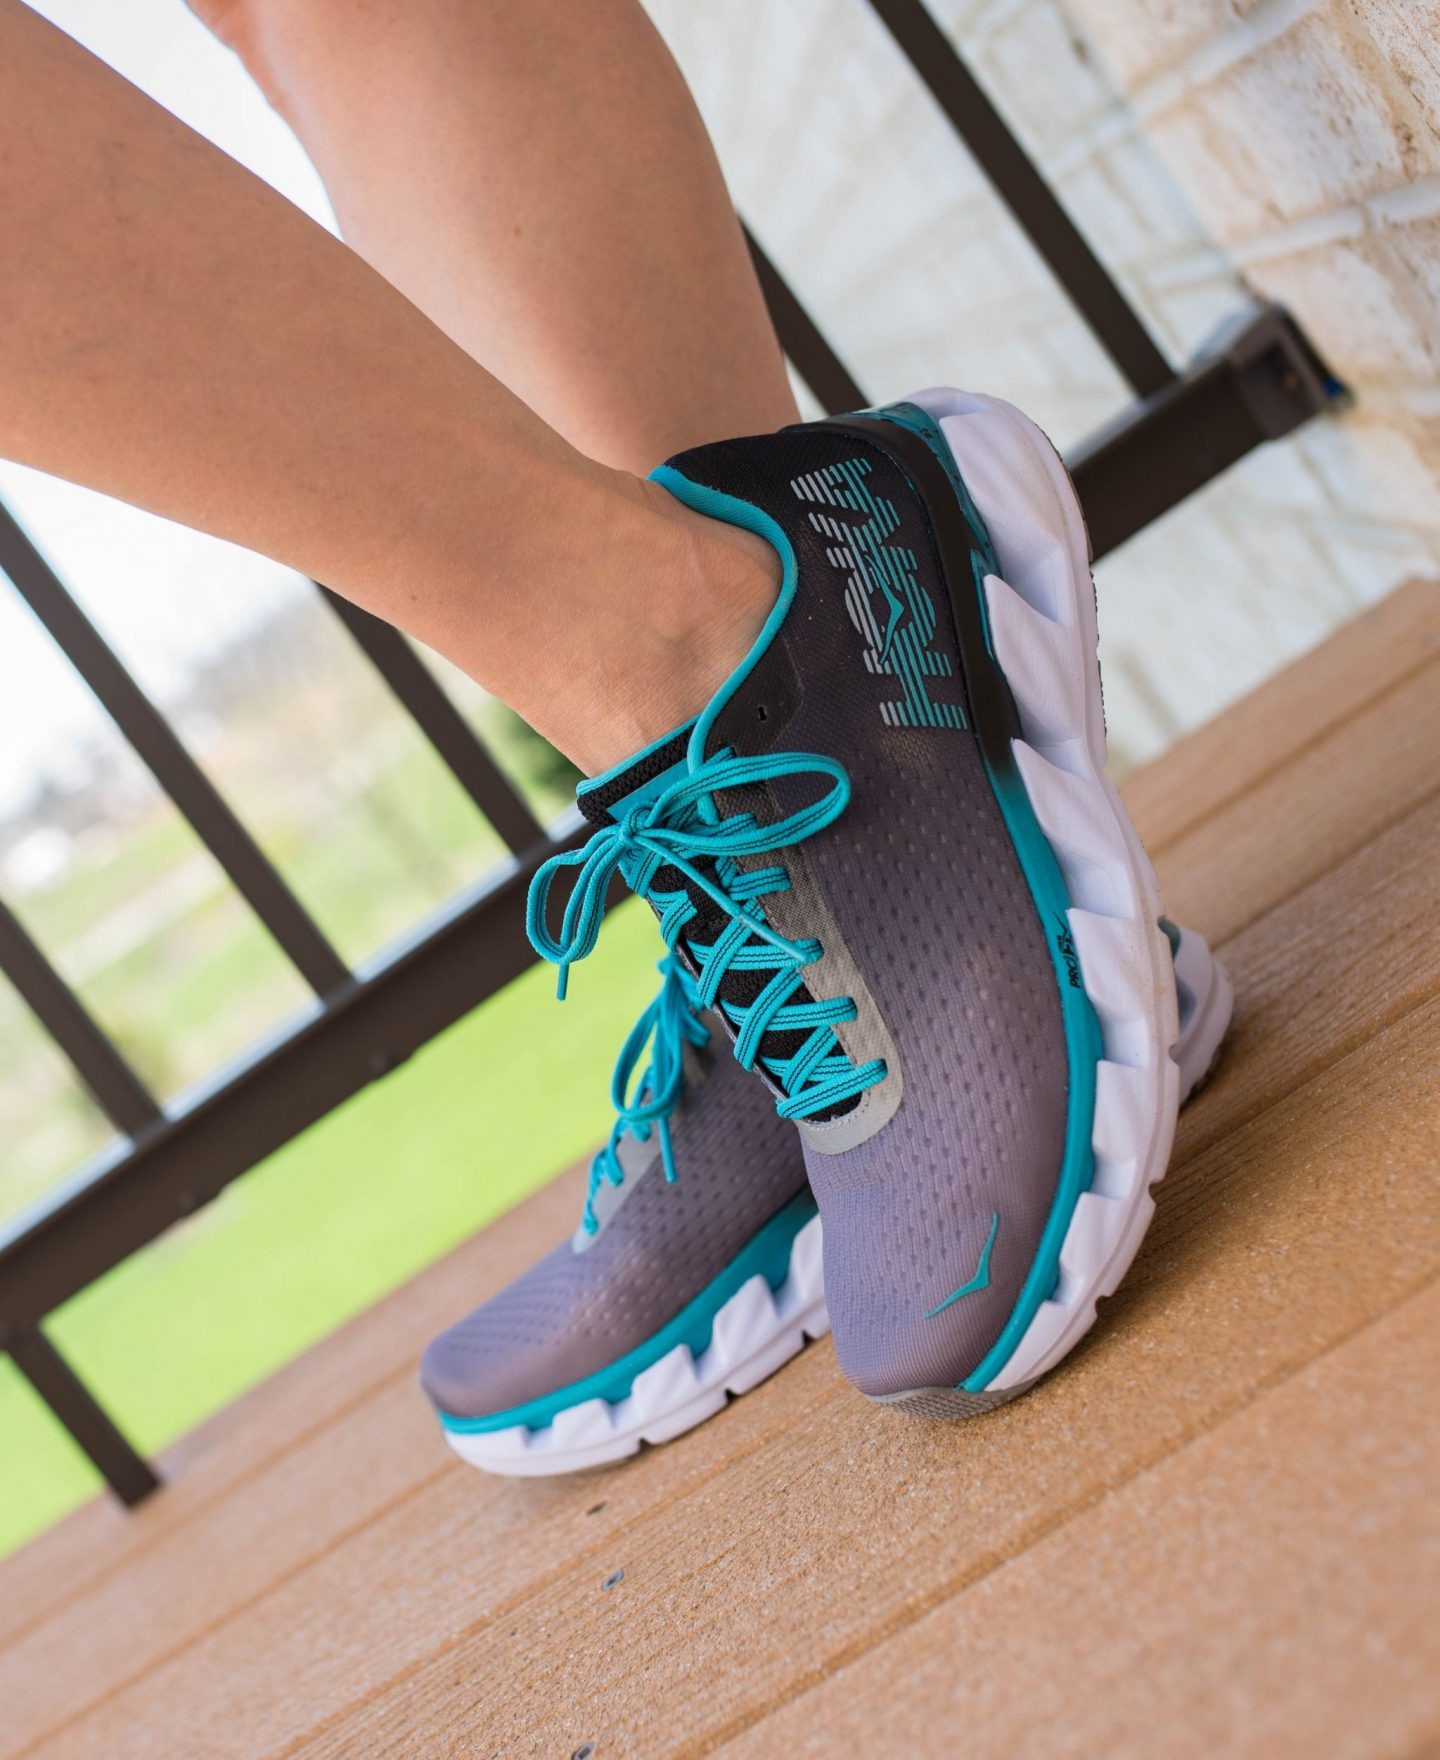 Hoka Sneakers comfortable